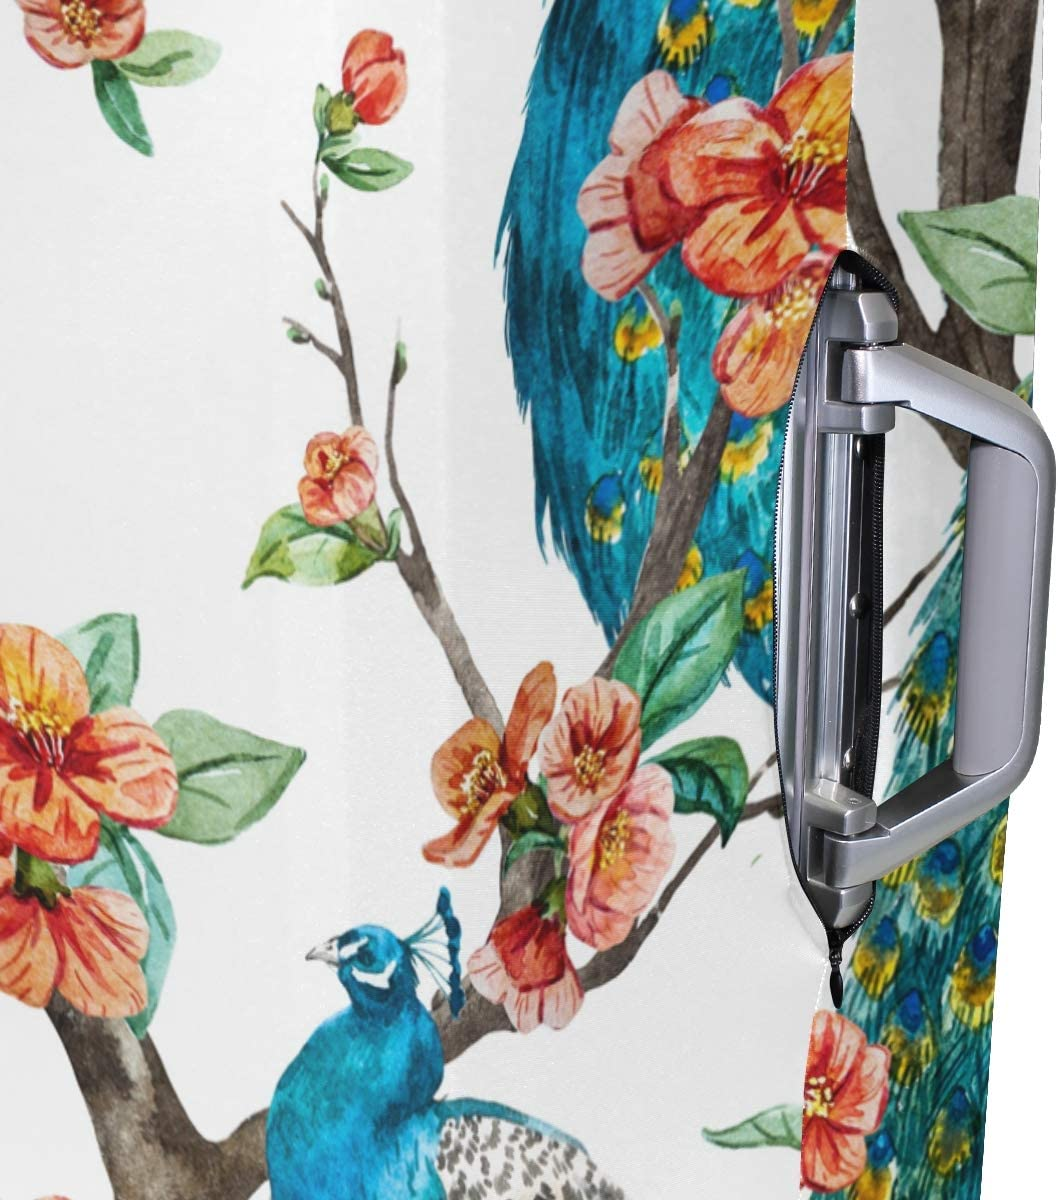 FOLPPLY Elegant Peacock Flower Luggage Cover Baggage Suitcase Travel Protector Fit for 18-32 Inch